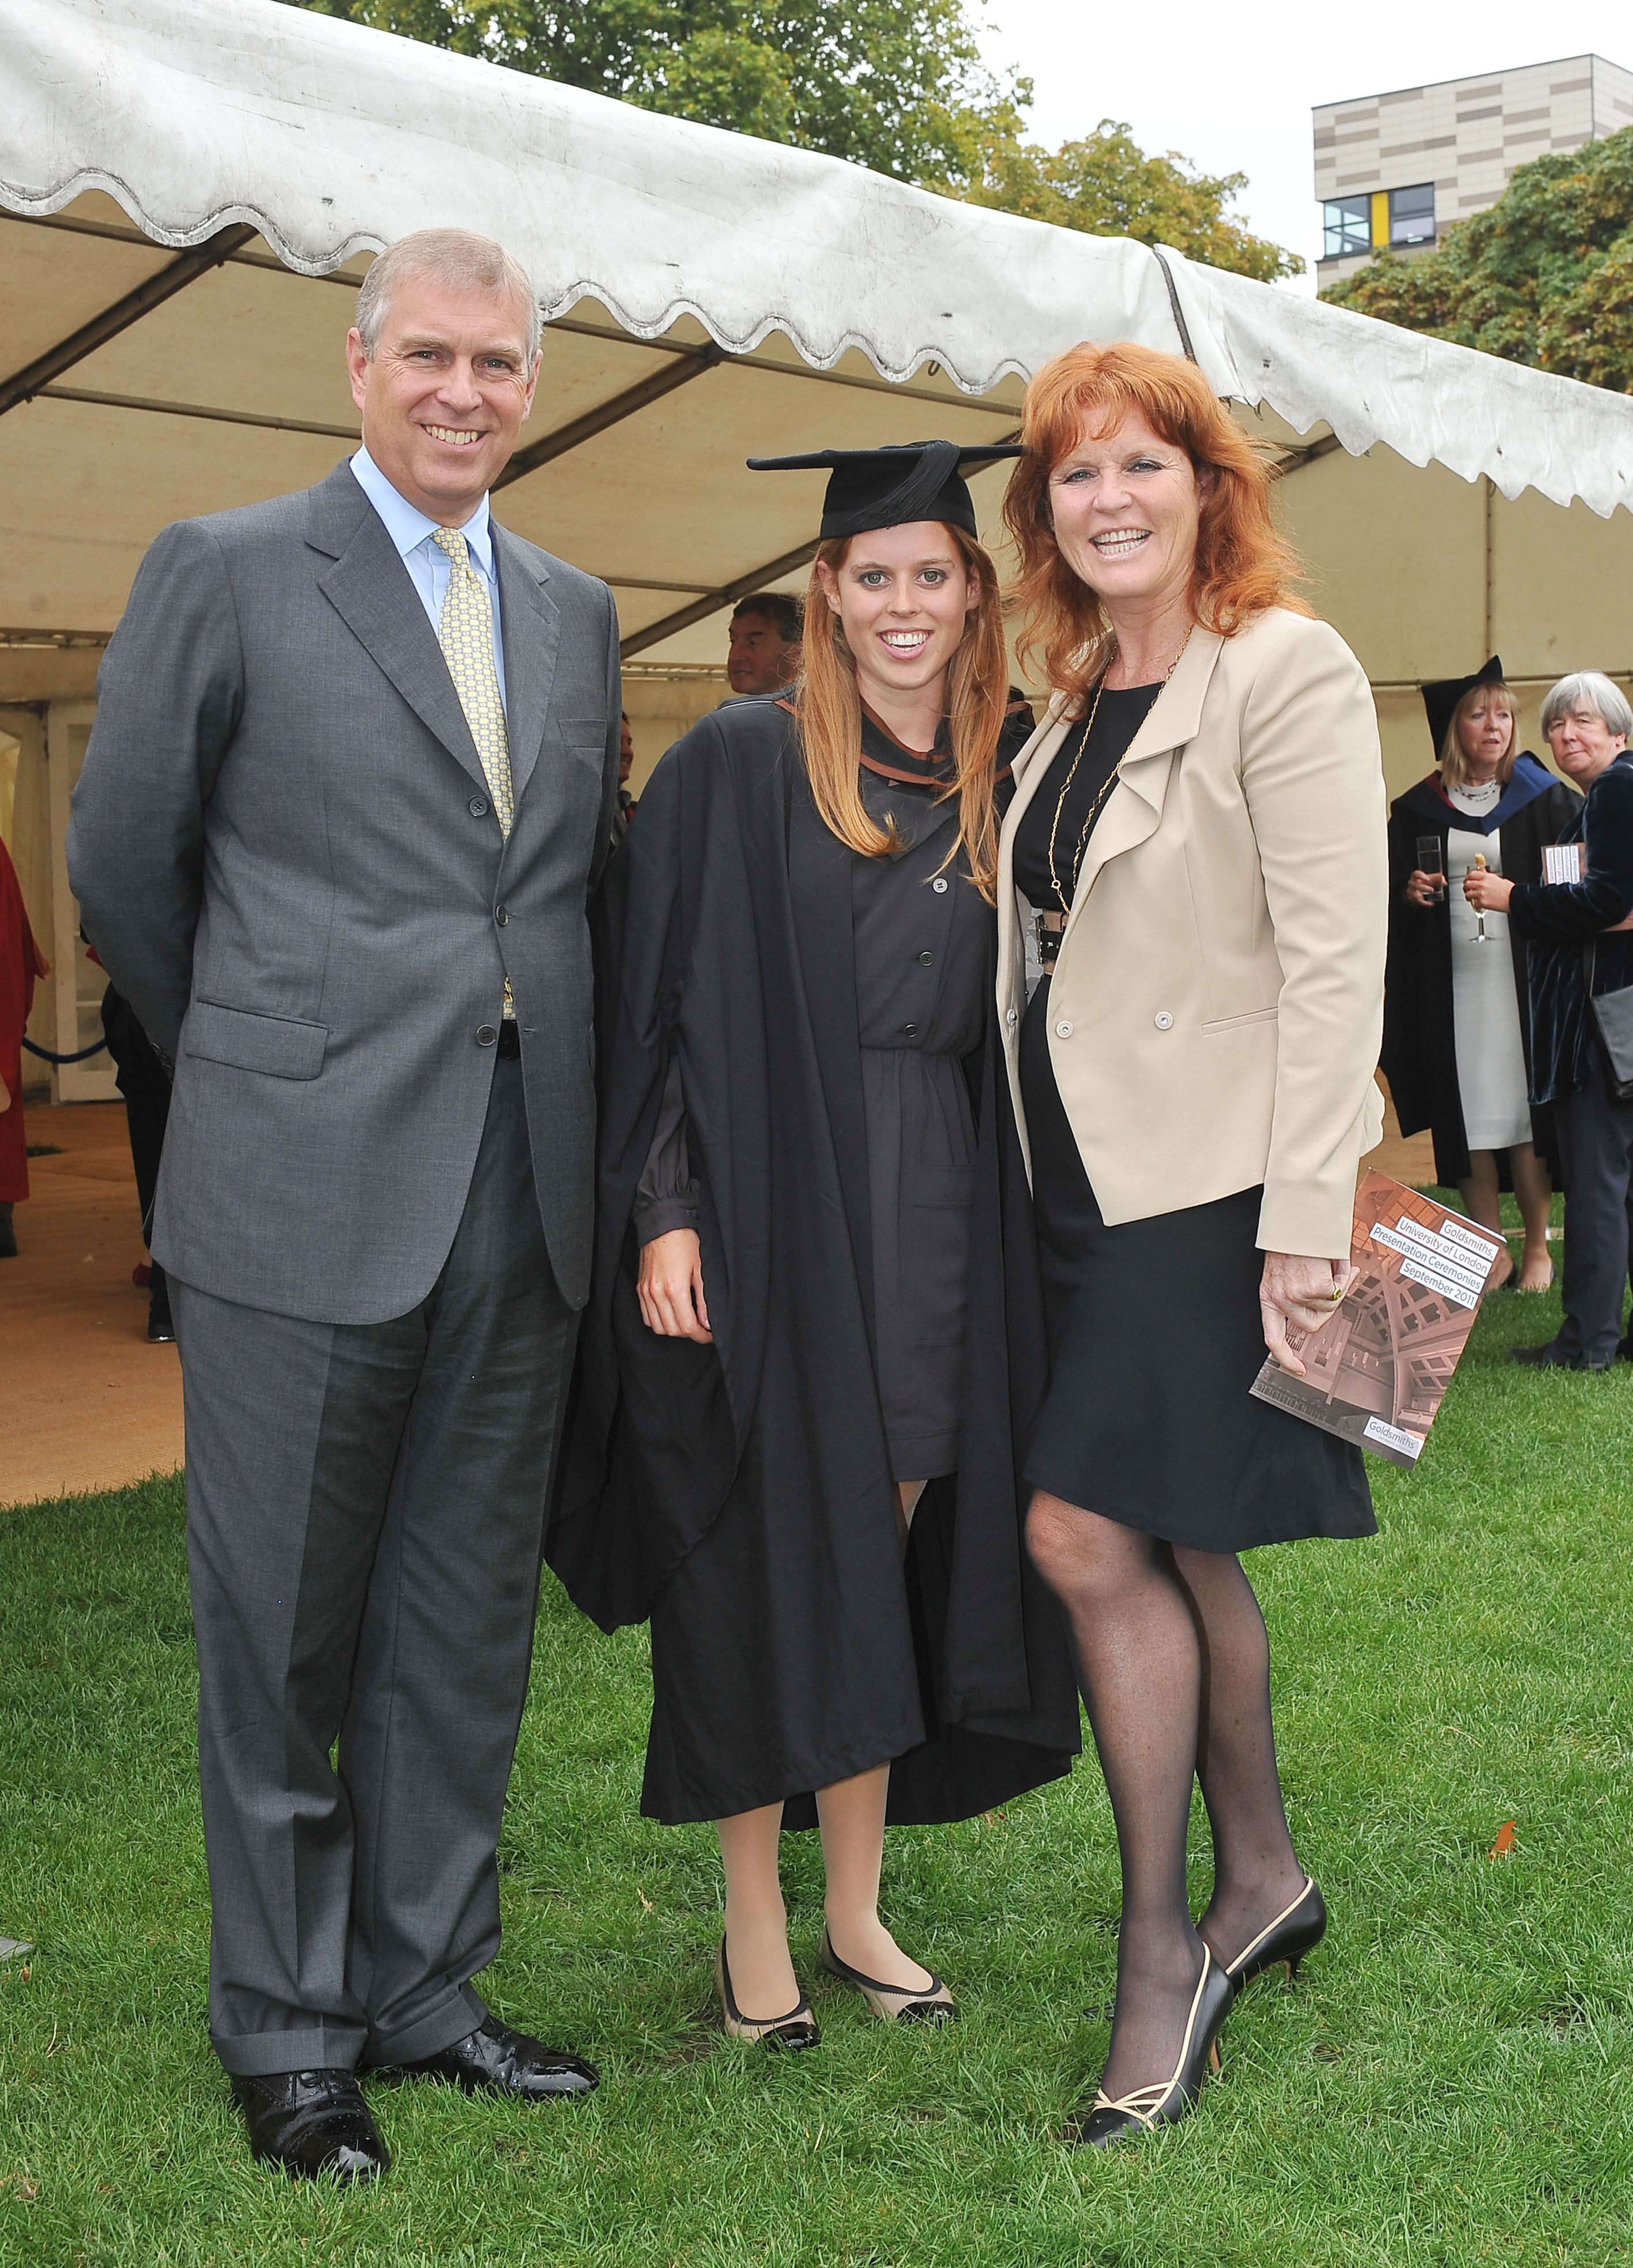 Prince Andrew, The Duke York (L), Sarah, Duchess of York (R) and their daughter, Princess Beatrice, following her graduation ceremony at Goldsmiths College on September 9, 2011 in London, United Kingdom